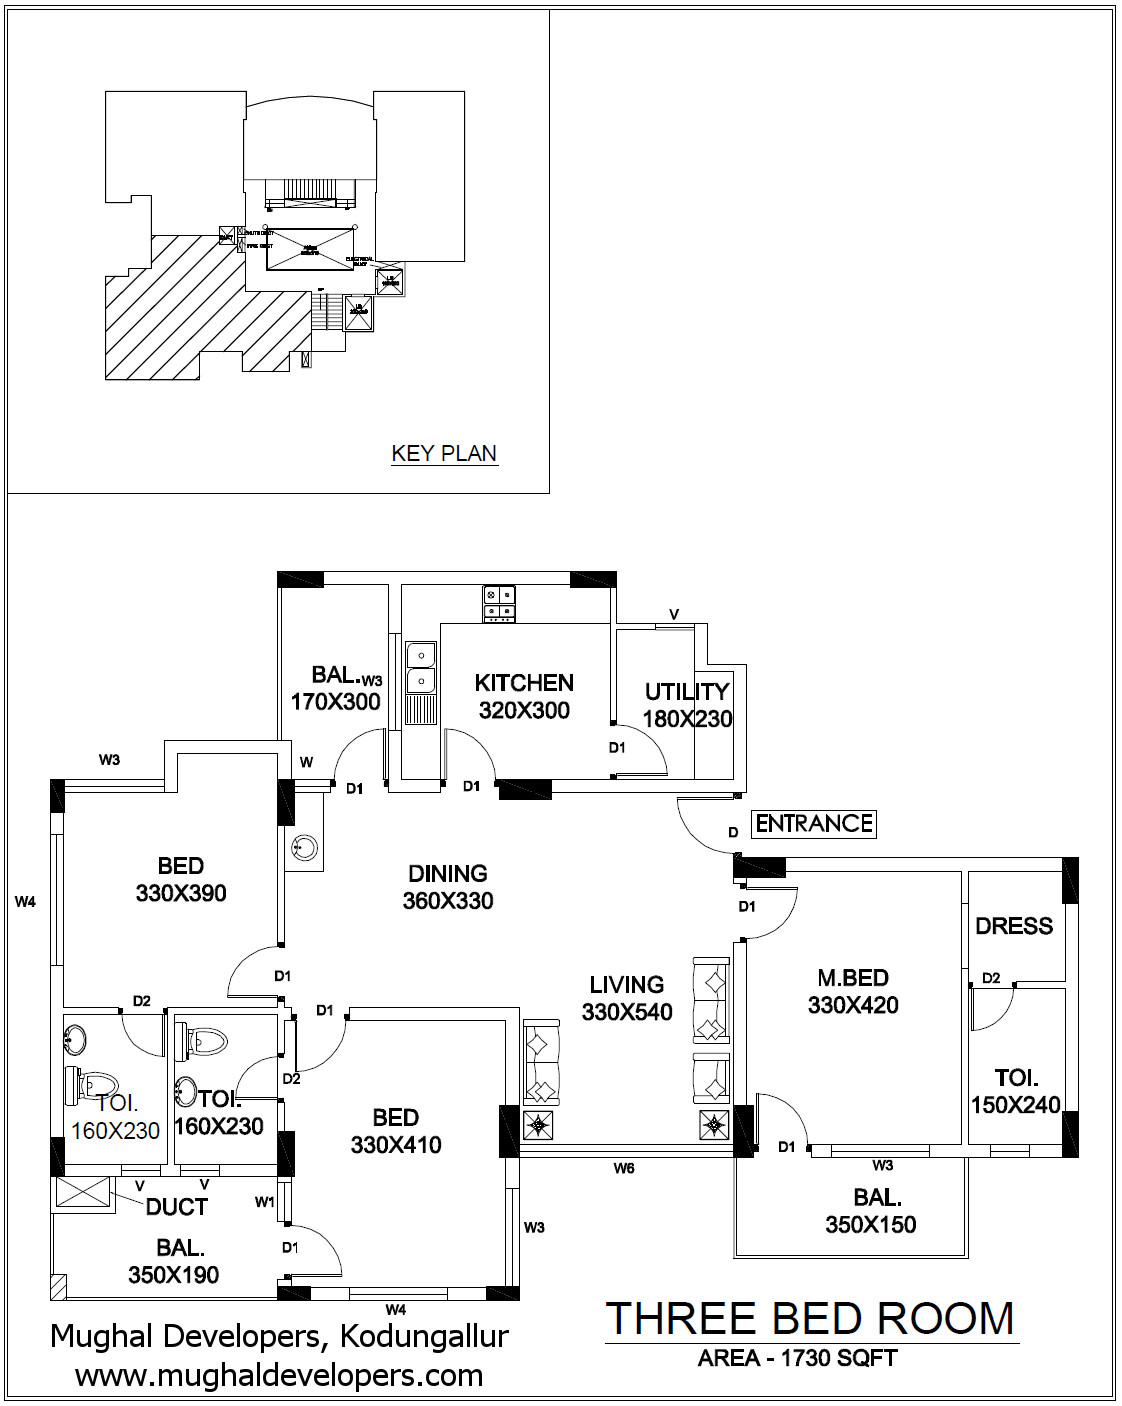 Apartment plan 3 Bedroom Hall Kitchen (3BHK) - Mughal Apartments, Kodungallur